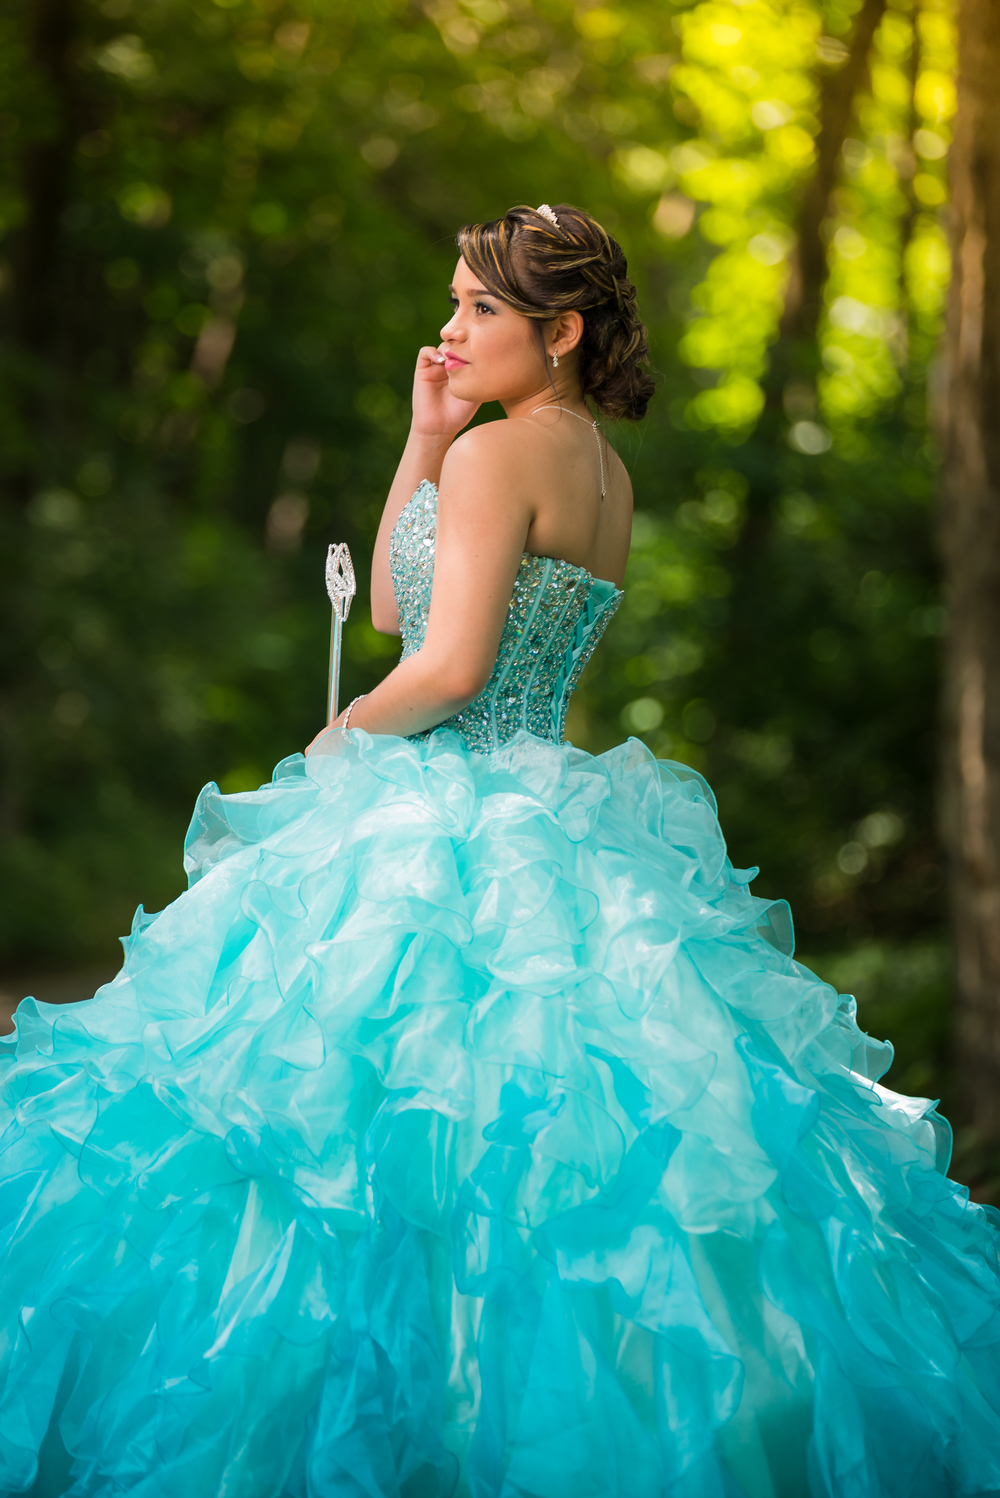 Naiomi-Quince-Garcia-Photography-2161.jpg